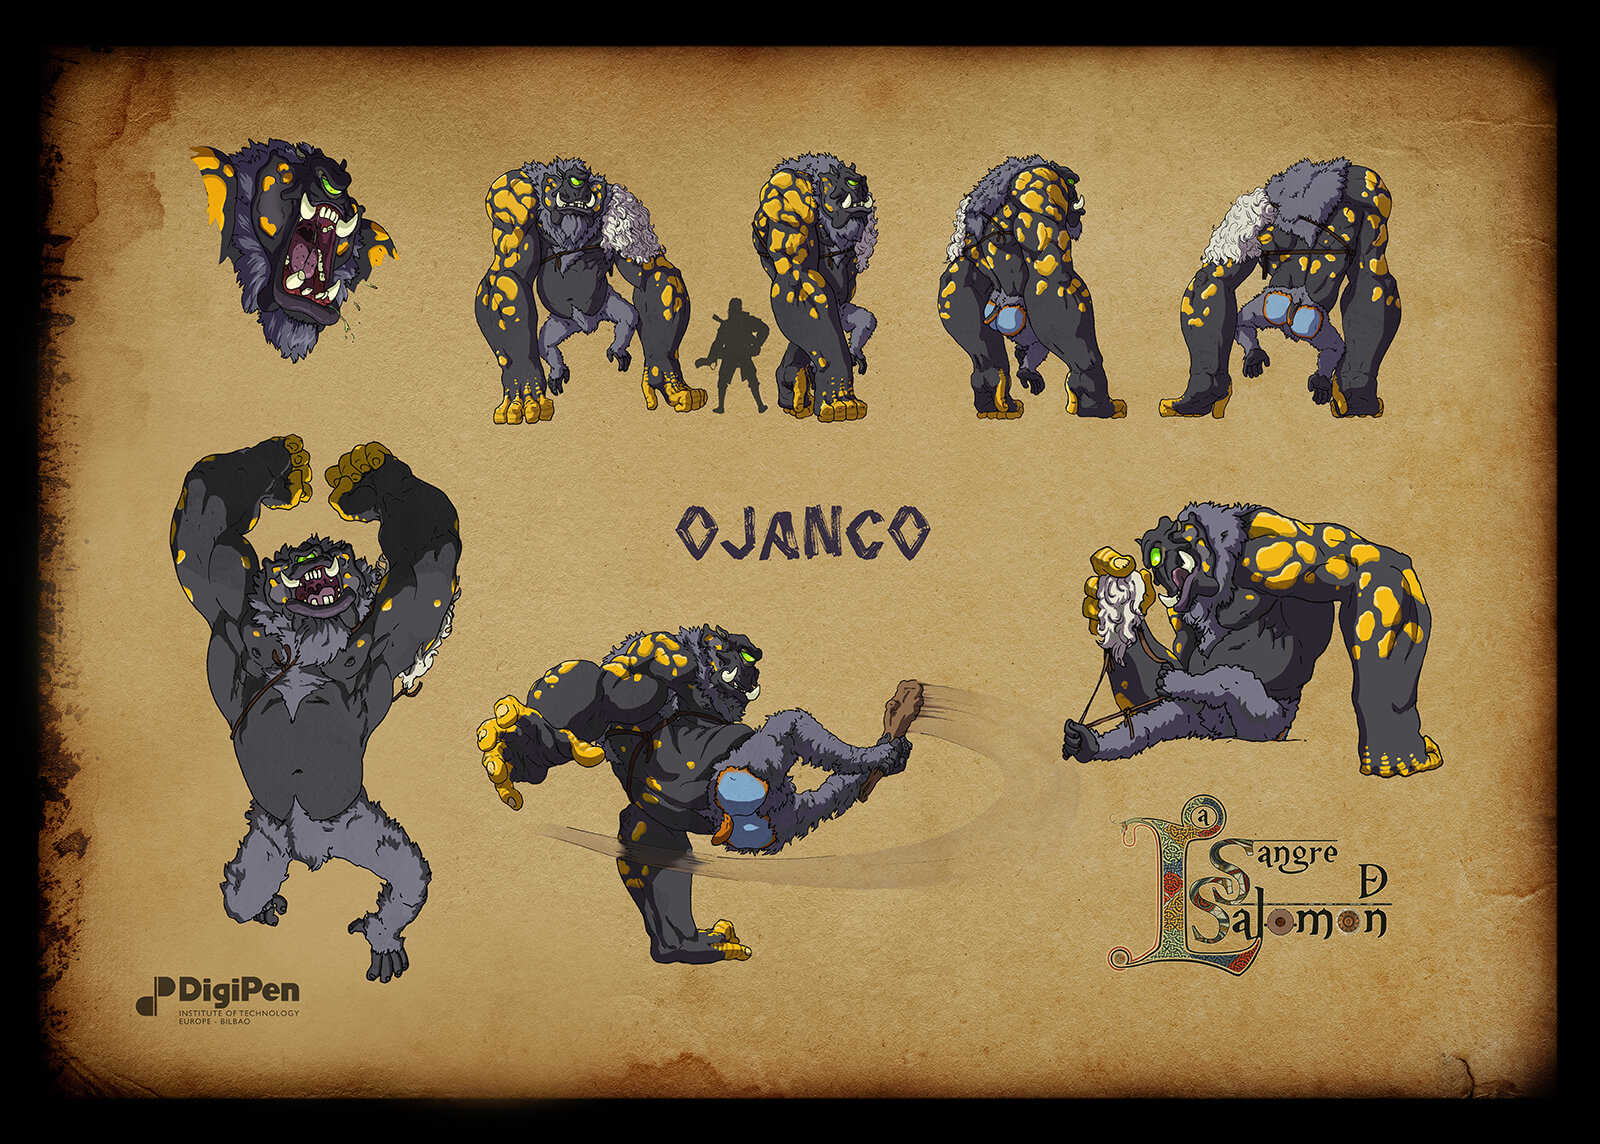 Concept paintings for a gray and black ape-like cyclops monster named Ojanco in various poses such as pouncing and kicking